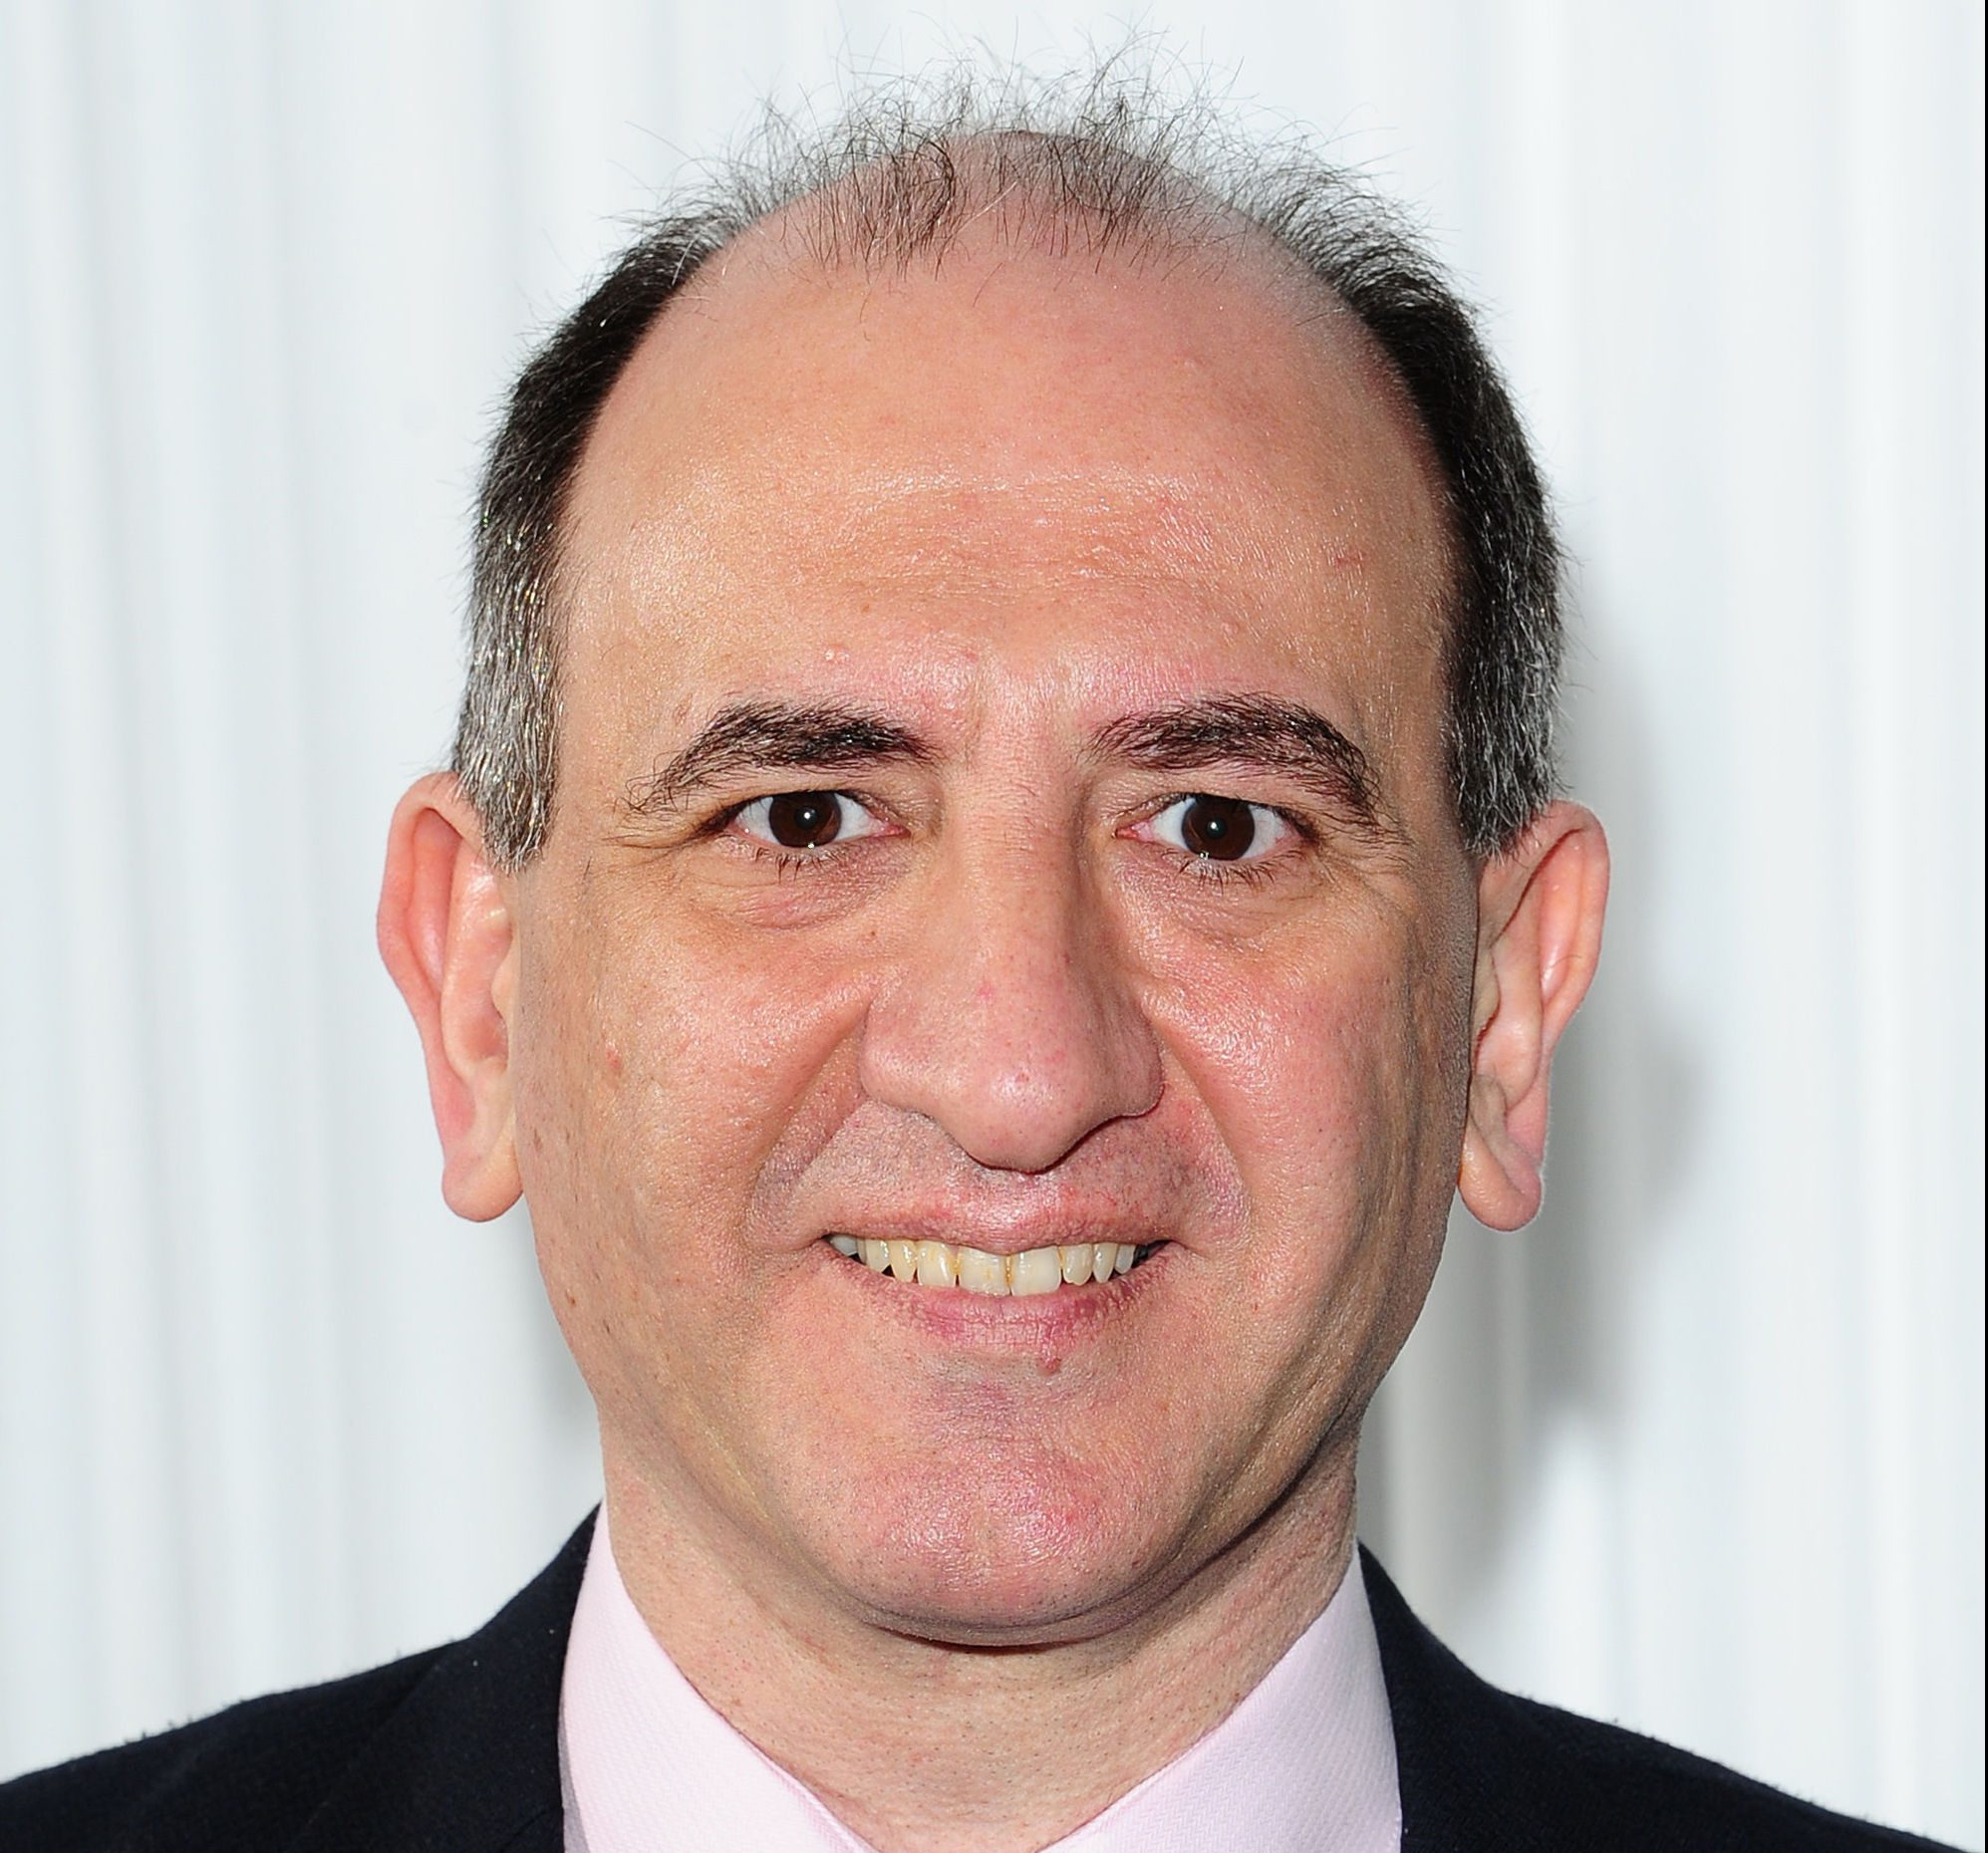 Armando Iannucci, who created the cult political sitcom The Thick of It, will be presented with the Award for Outstanding Contribution to Film and Television at the Bafta Scotland awards ceremony in Glasgow next month (Ian West/PA Wire)